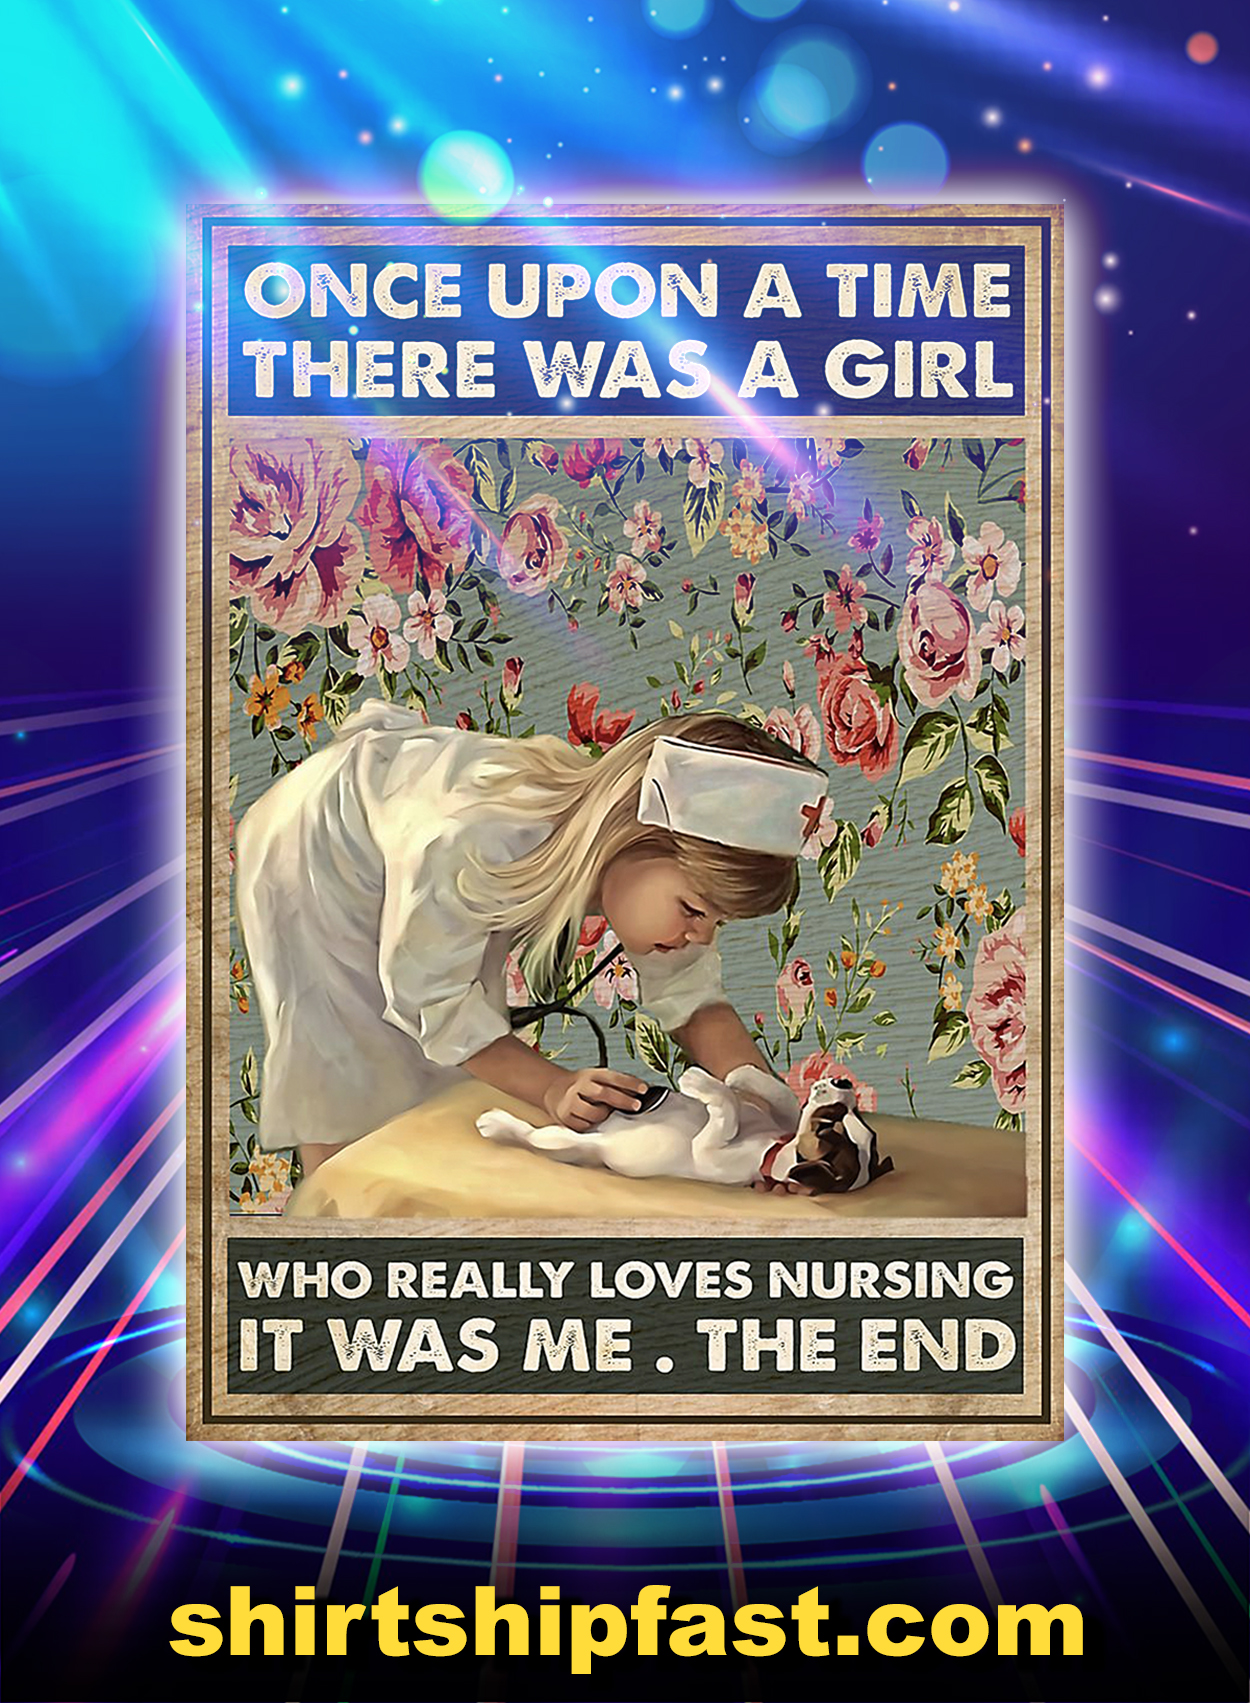 Once upon a time there was a girl who really loves nursing poster - A3